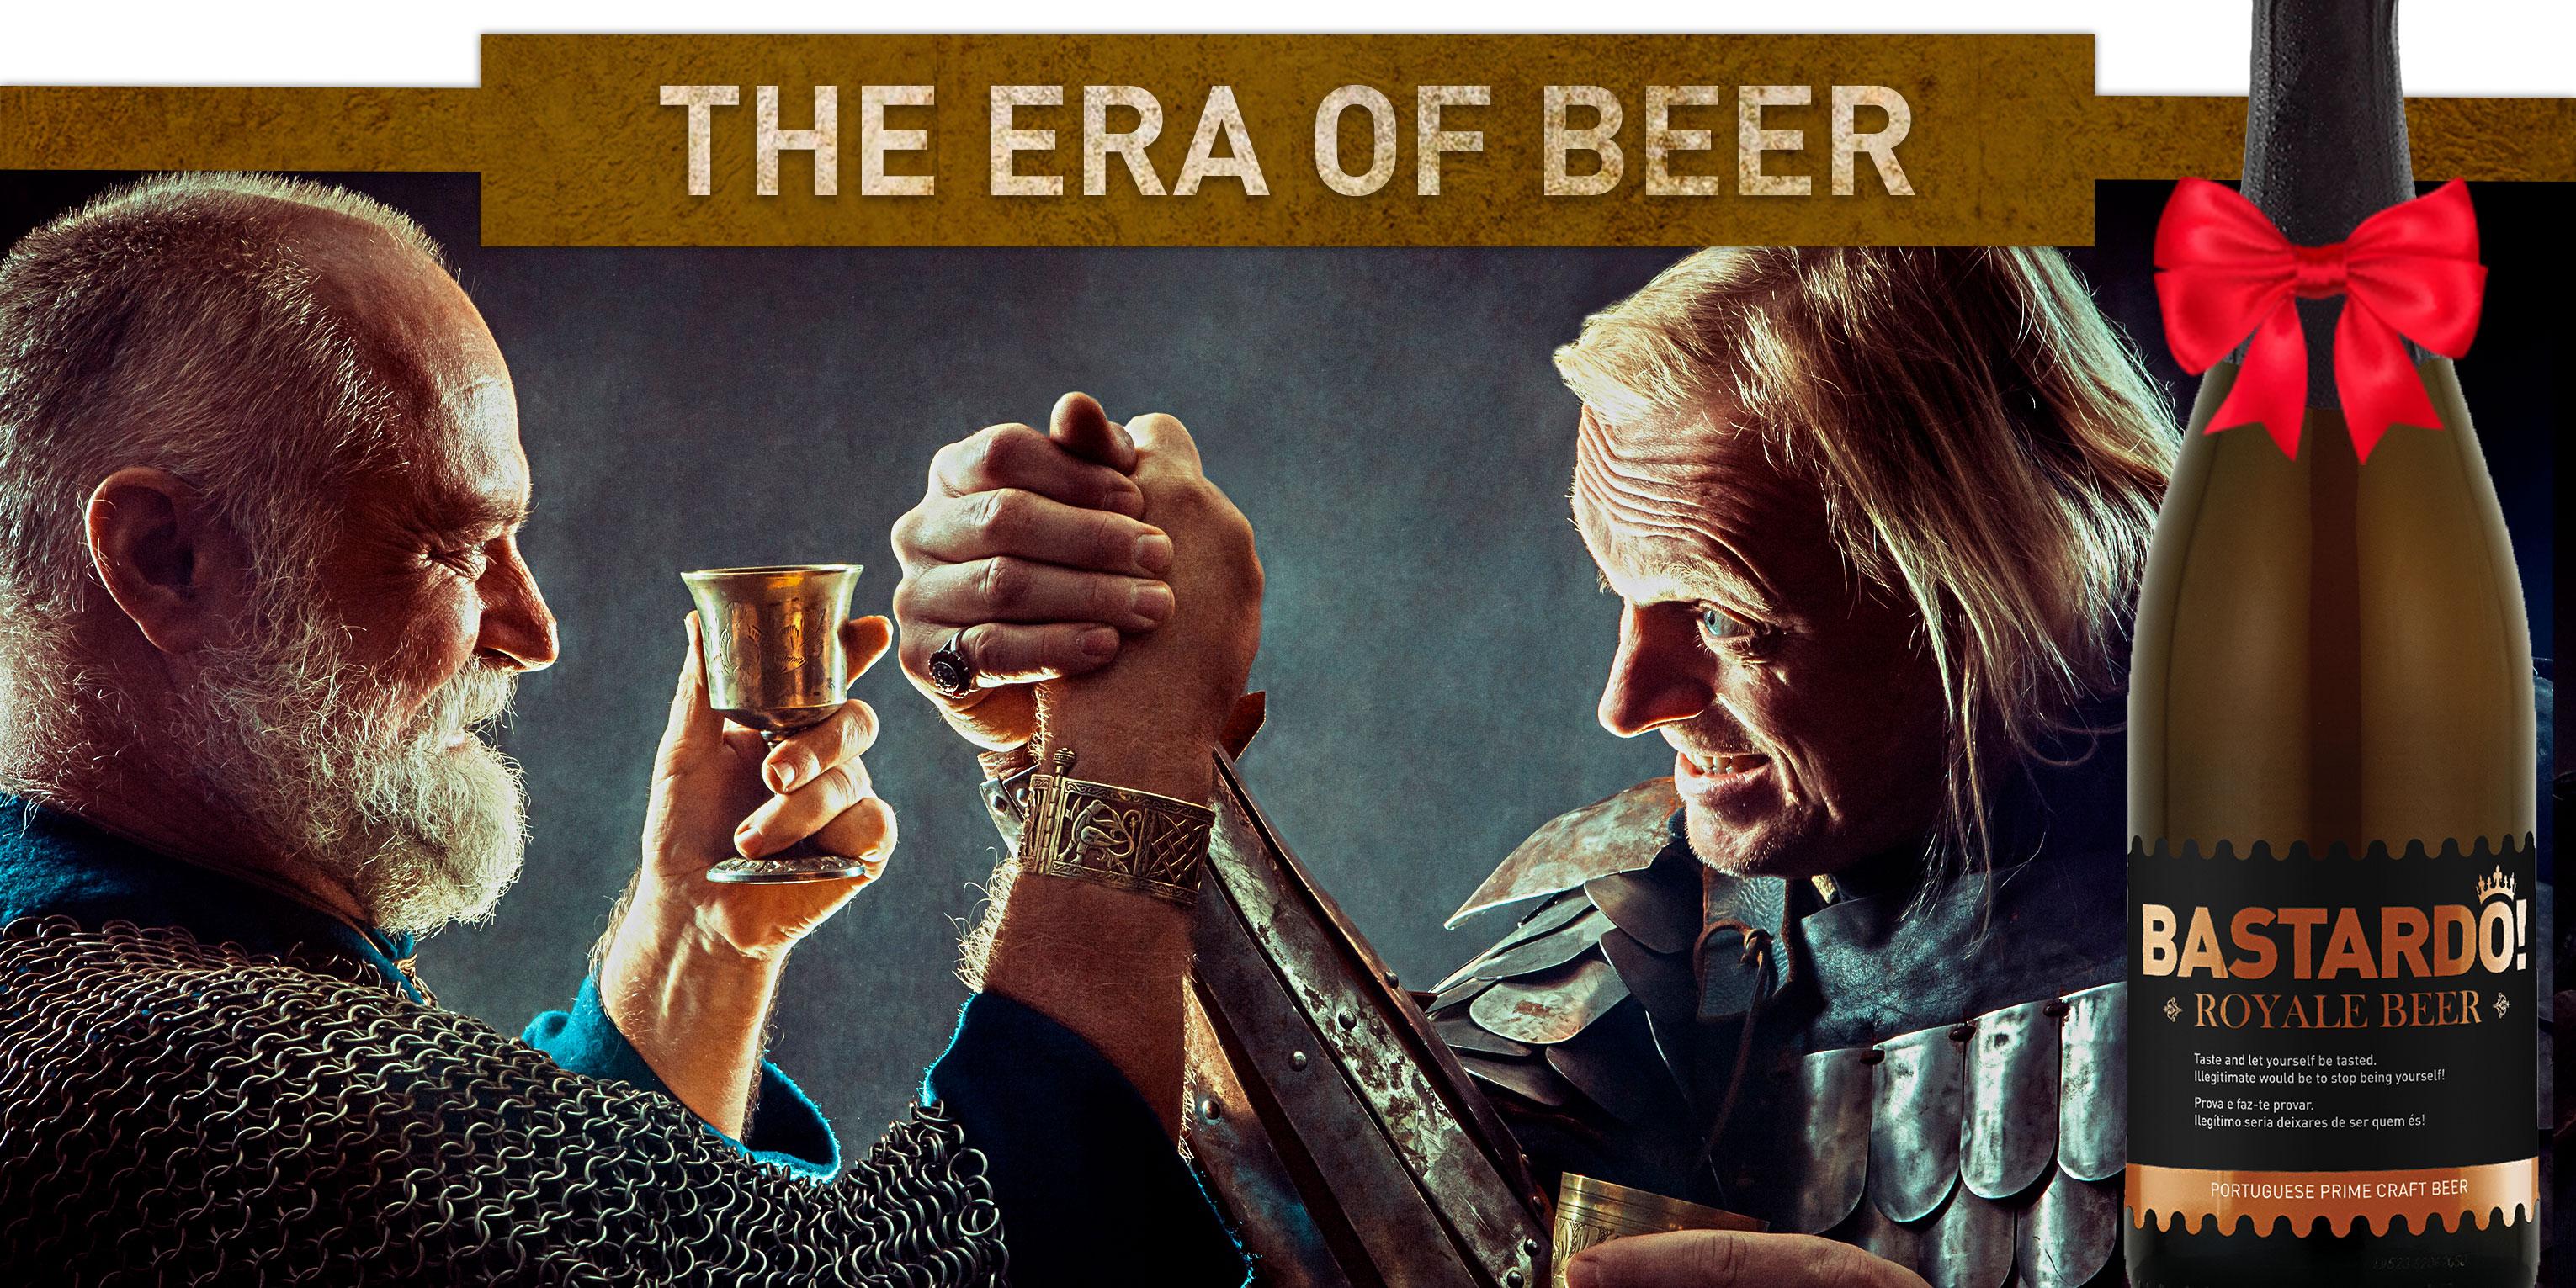 The Era of Beer